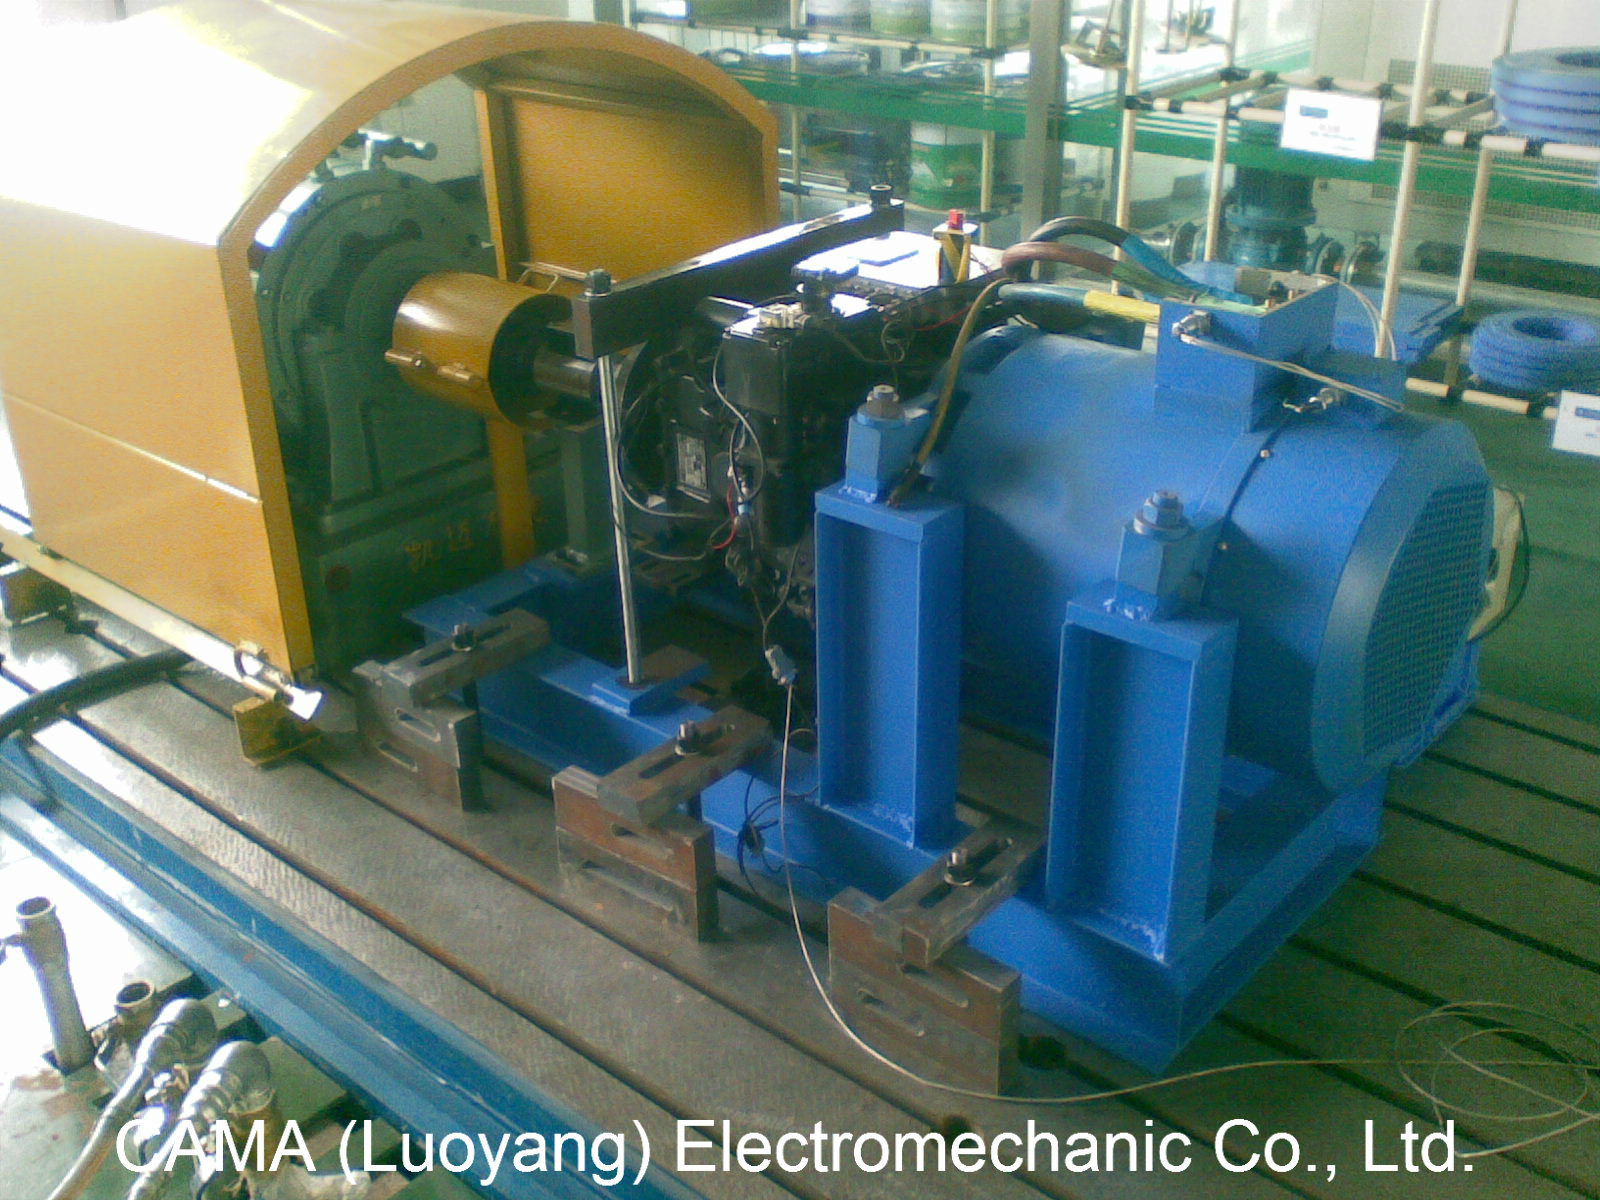 Electric Motor and Controller Test Bench for New Energy EV Hev Test